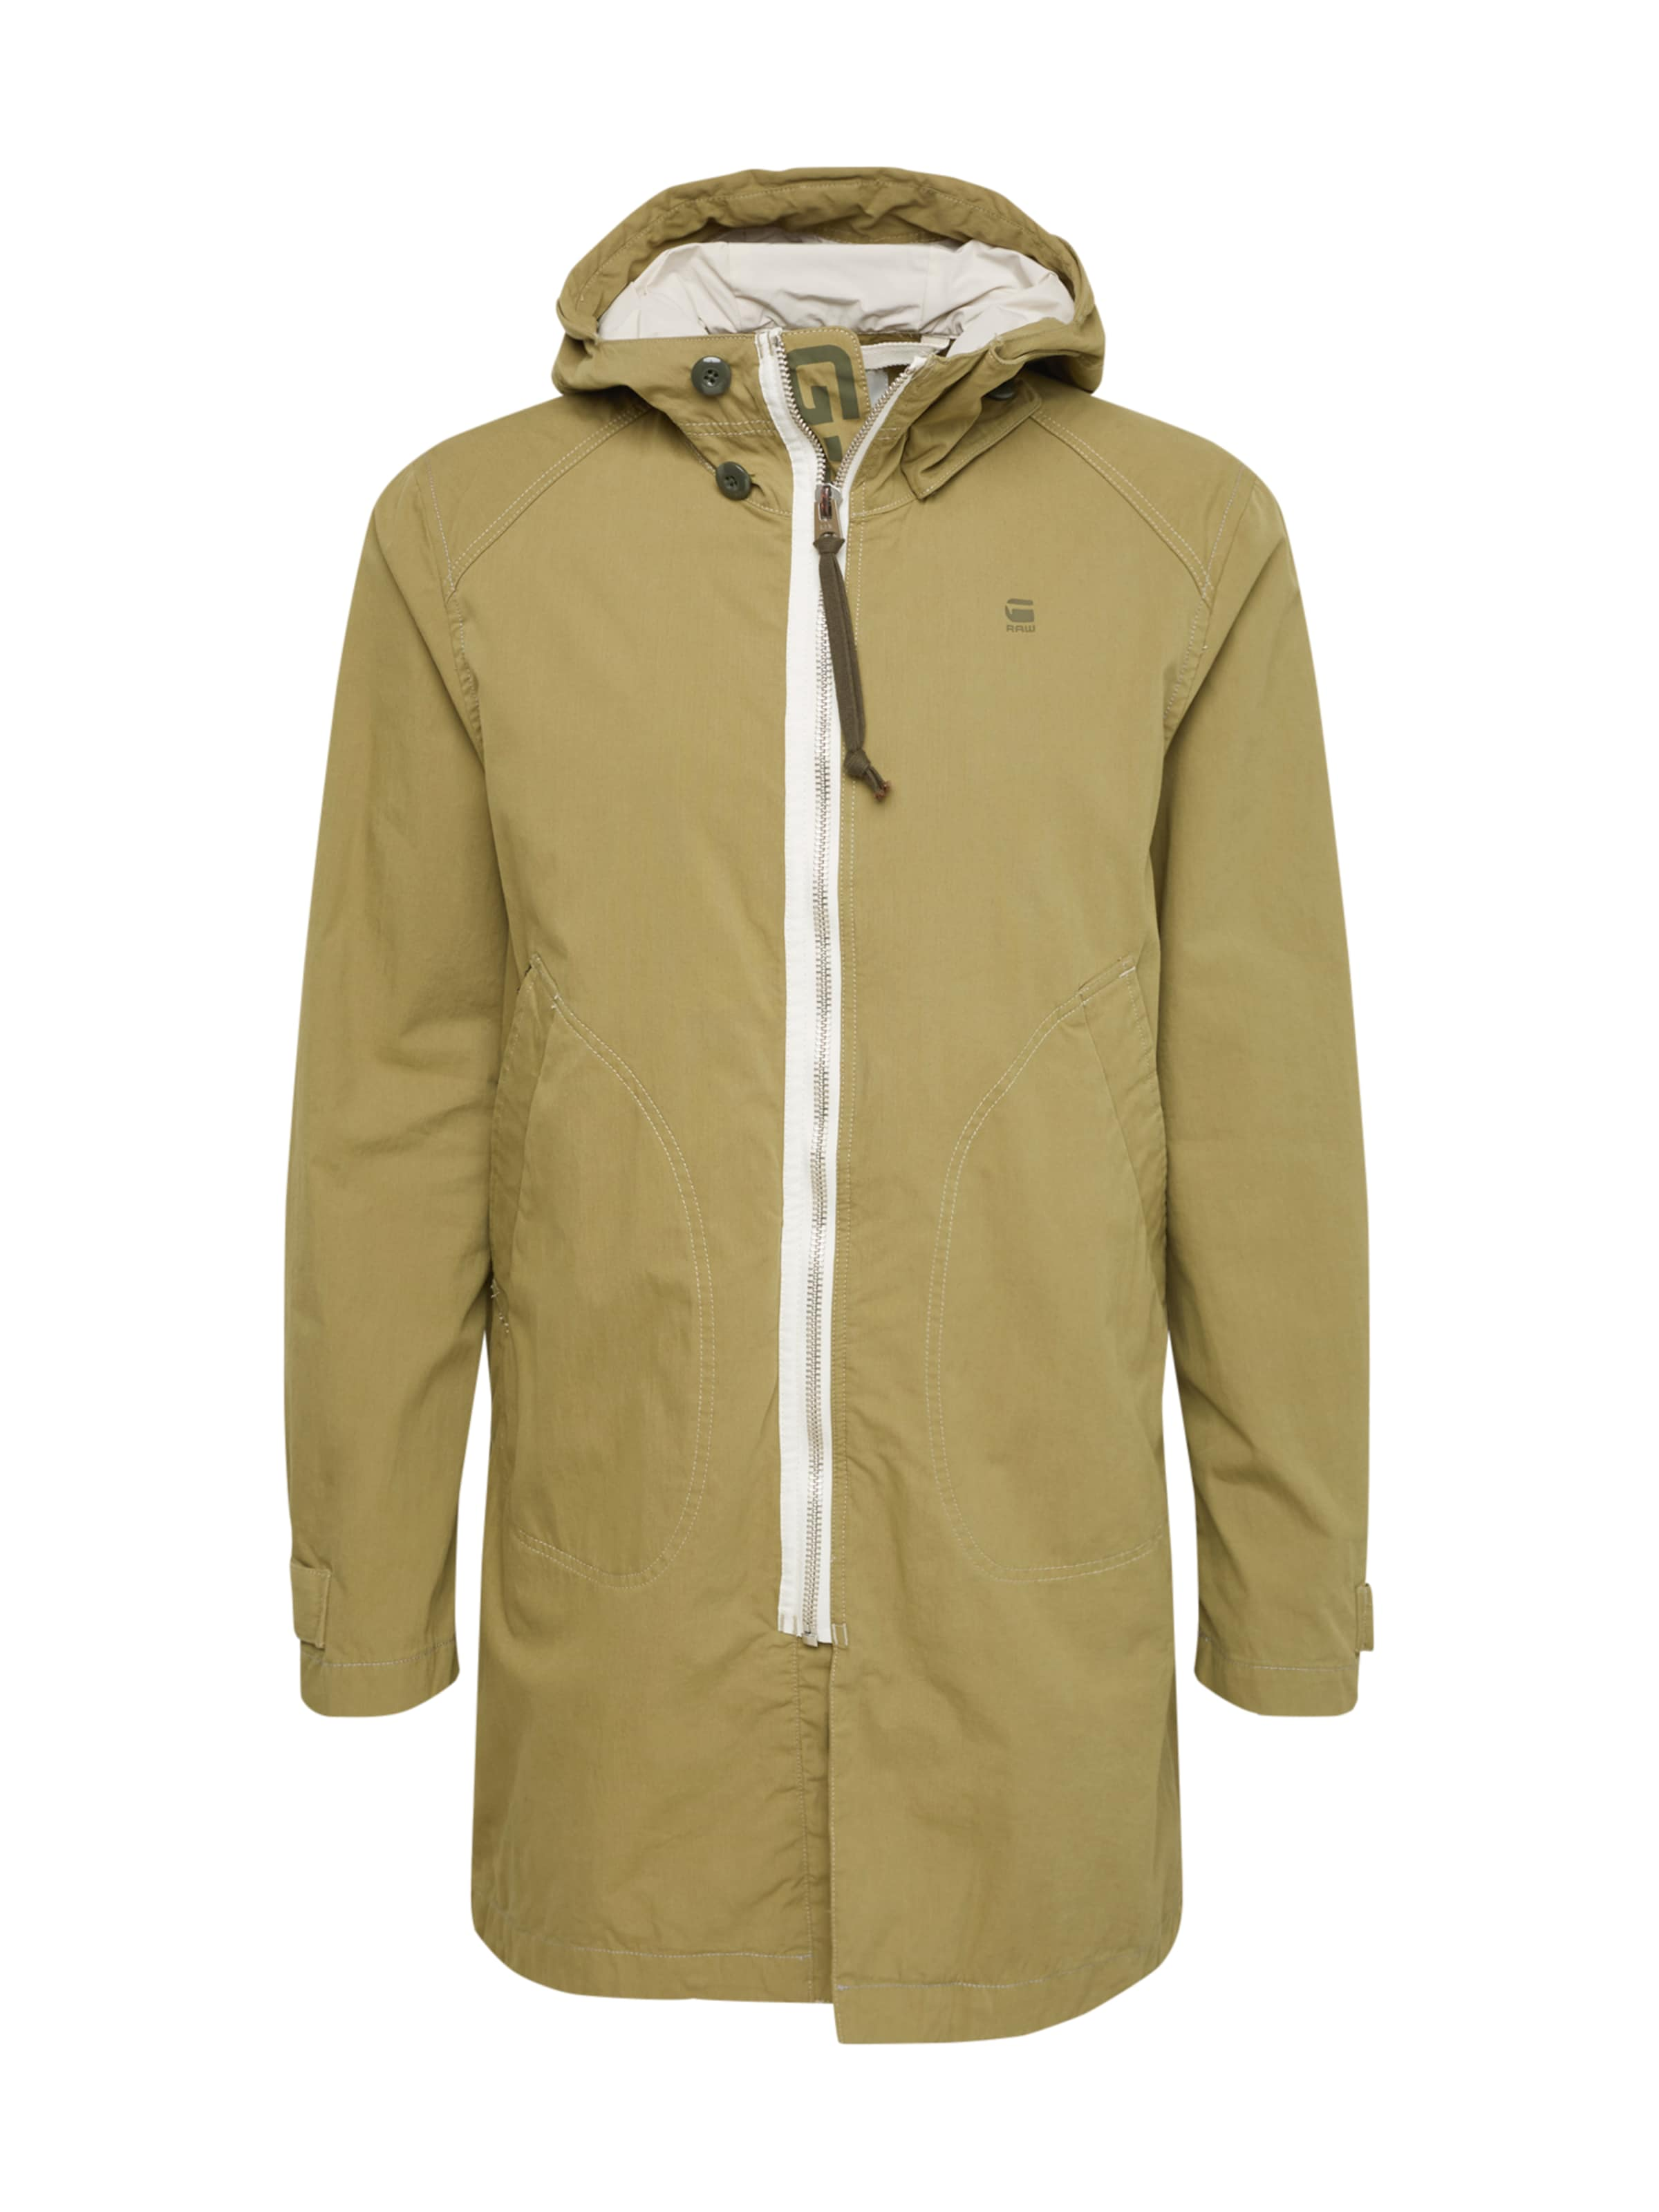 Parka Parka' In Raw G star Khaki Summer 'bolt cq5LA34Rj